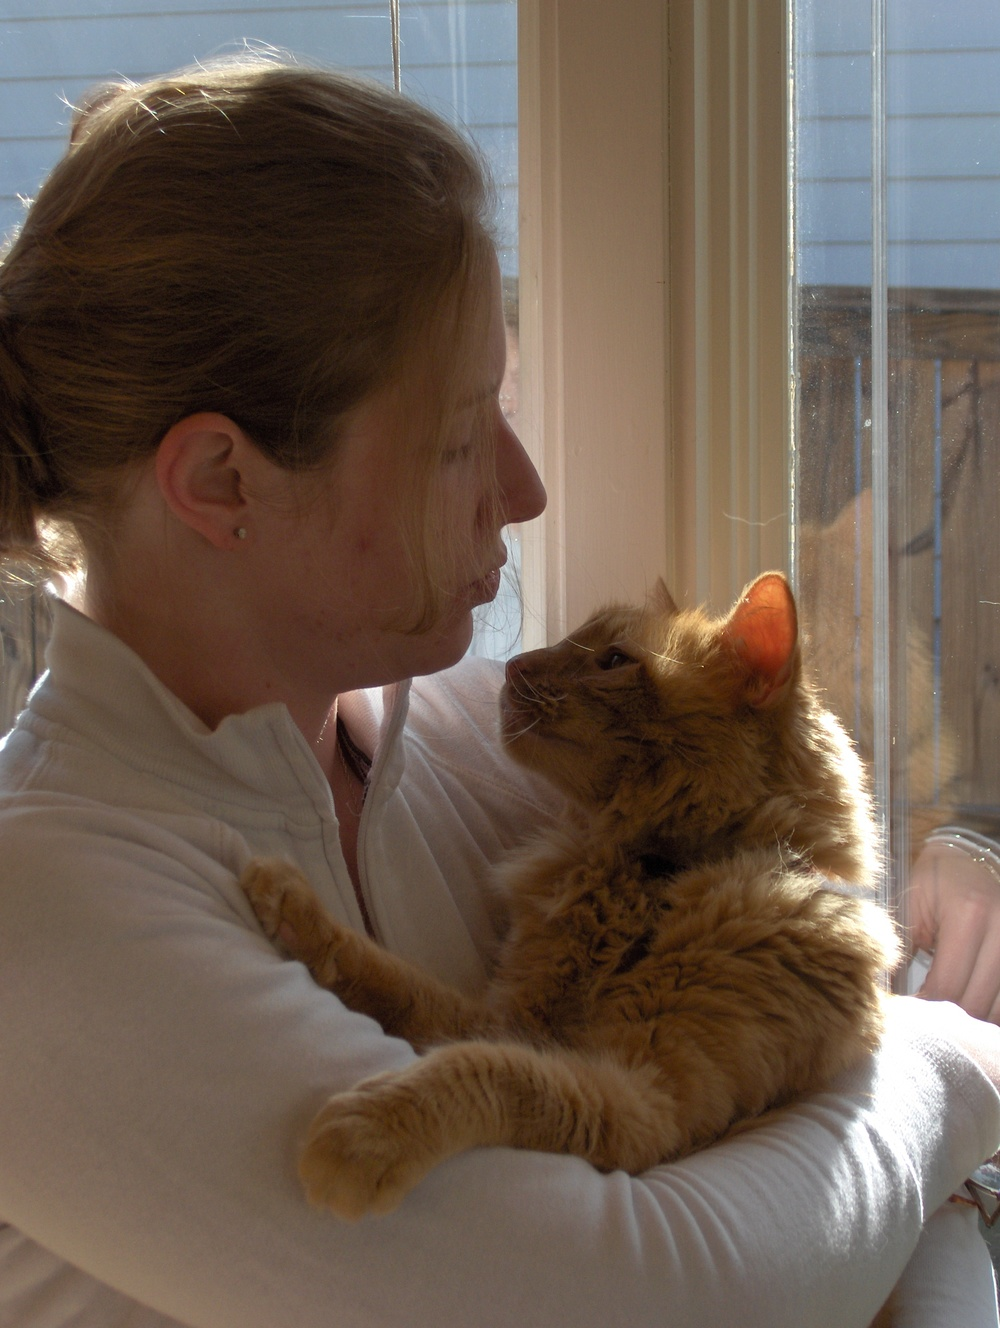 trianglevrh-triangle-veterinary-referral-hospital-tvrh-woman-holding-orange-cat.JPG